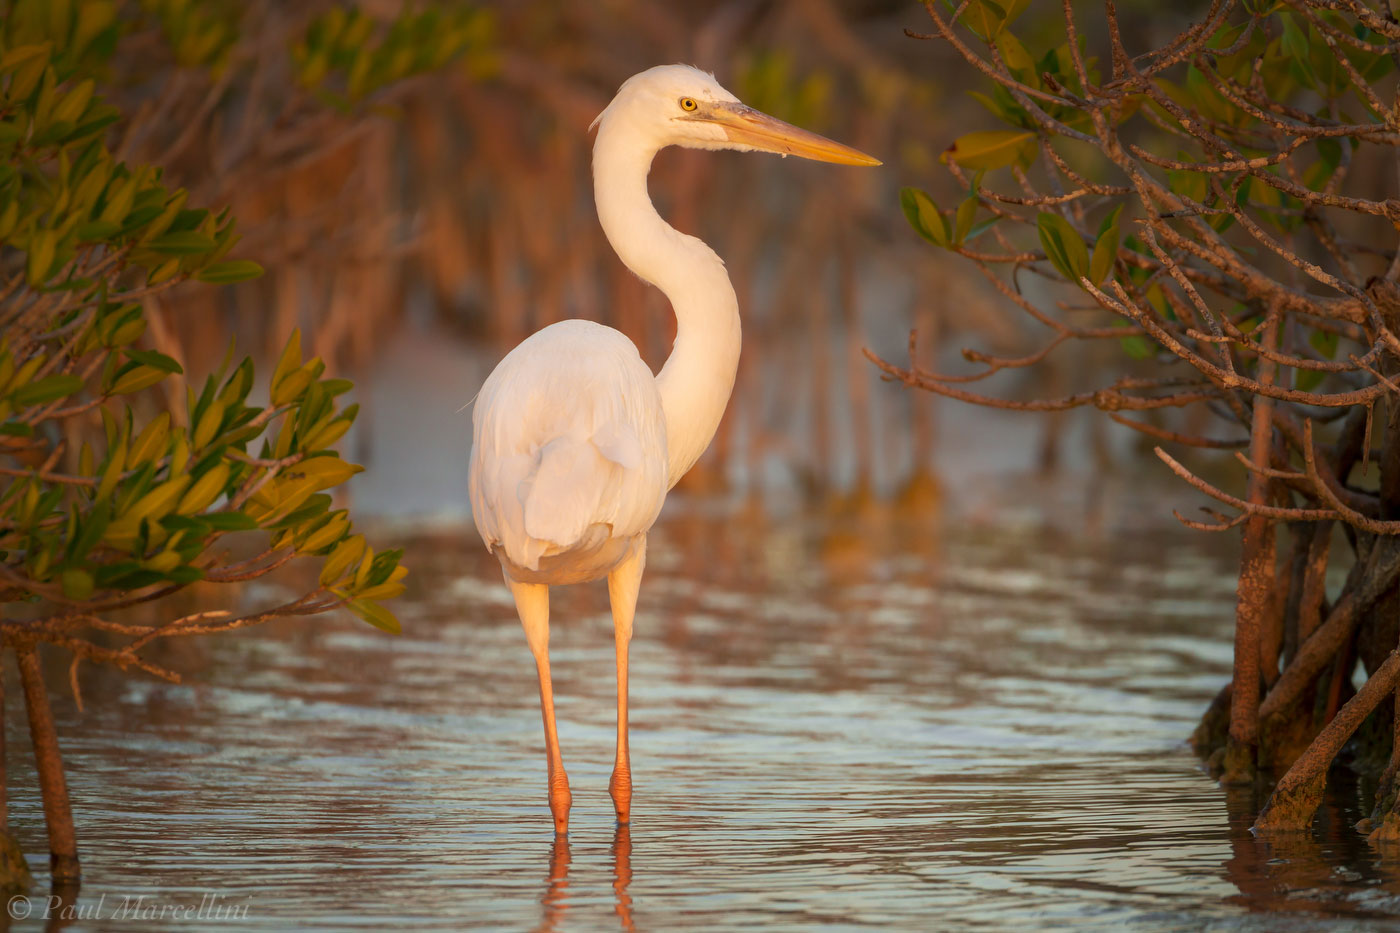 Ardea herodias occidentalis, great white heron, great white heron national wildlife refuge, florida, photo